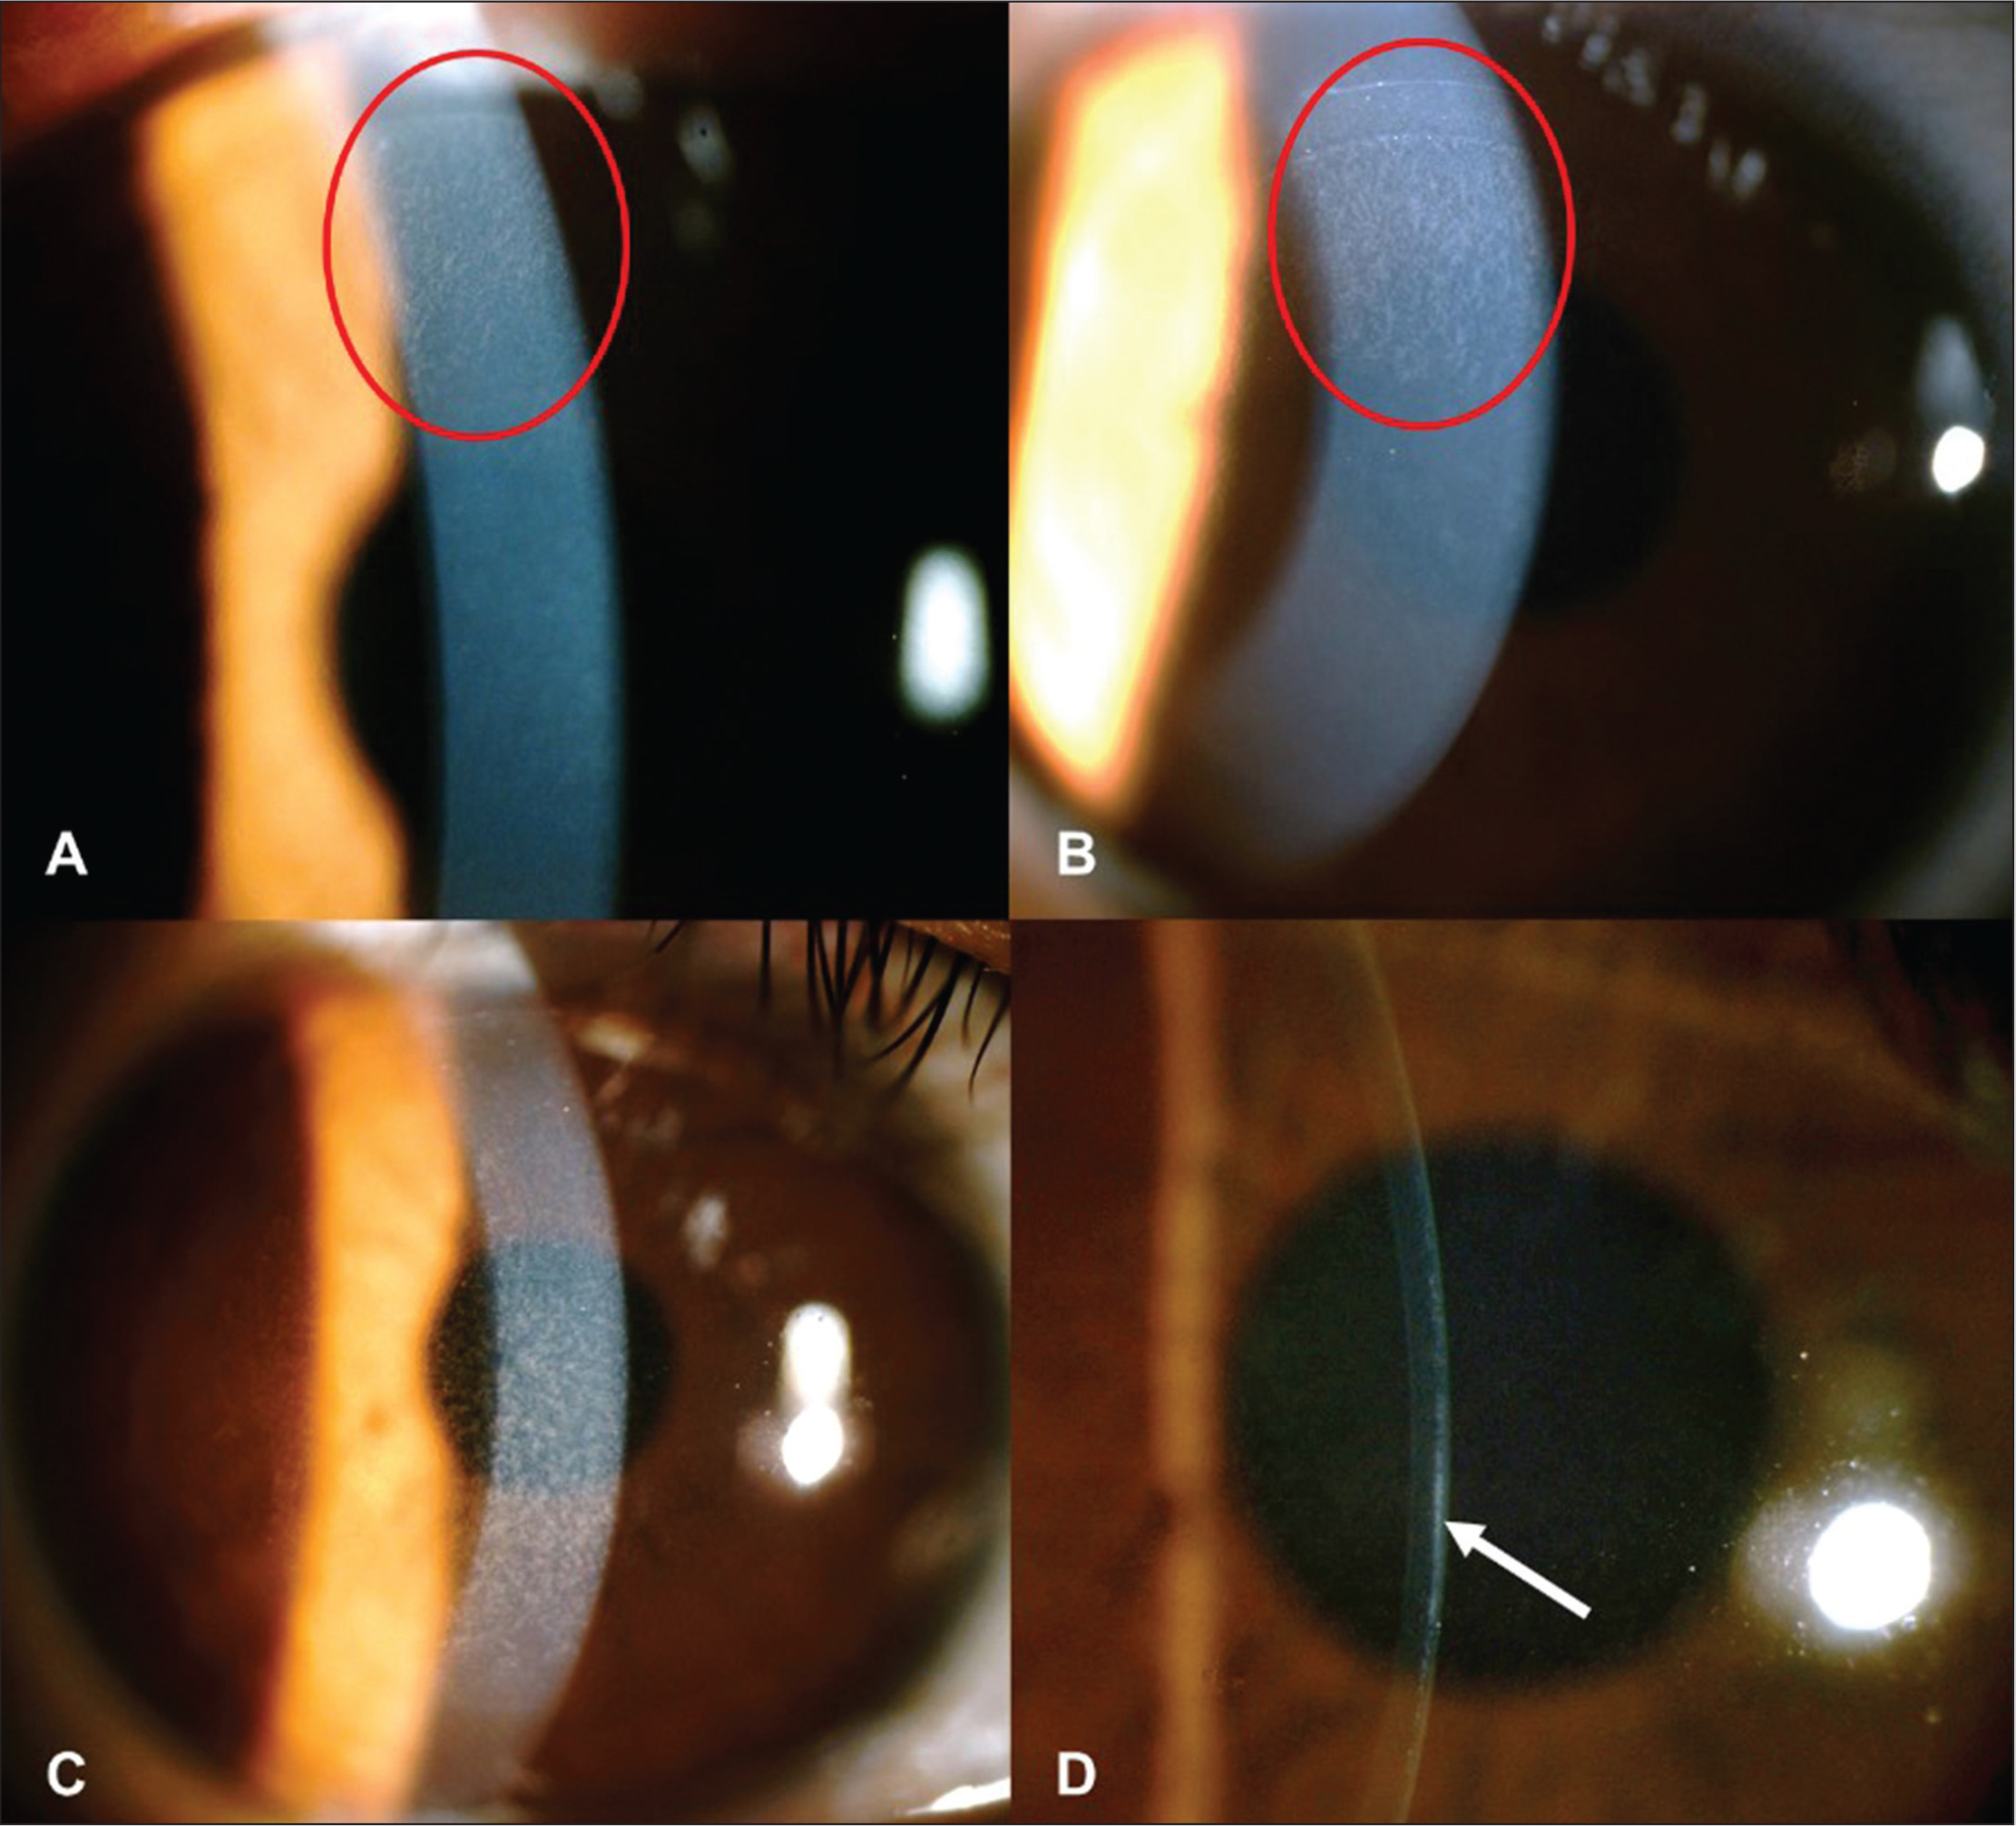 Slit-lamp photograph of eyes with different grades of diffuse lamellar keratitis (DLK) on the first postoperative day. (A) An eye with grade 1 DLK. A faint infiltrate in the cap periphery, especially in the peripheral interface around the small incision (red circle). (B) An eye with stage 2 DLK. Diffuse cellular infiltration in the interface but did not extend beyond the edge of the cap (red circle). (C) An eye with stage 3 DLK. A powdery cellular infiltration of the interface, involving the visual axis with multiple, fine granular collections clumped centrally. (D) With a narrow beam, the slit-lamp image showed a highly reflective structure in interface (arrow).